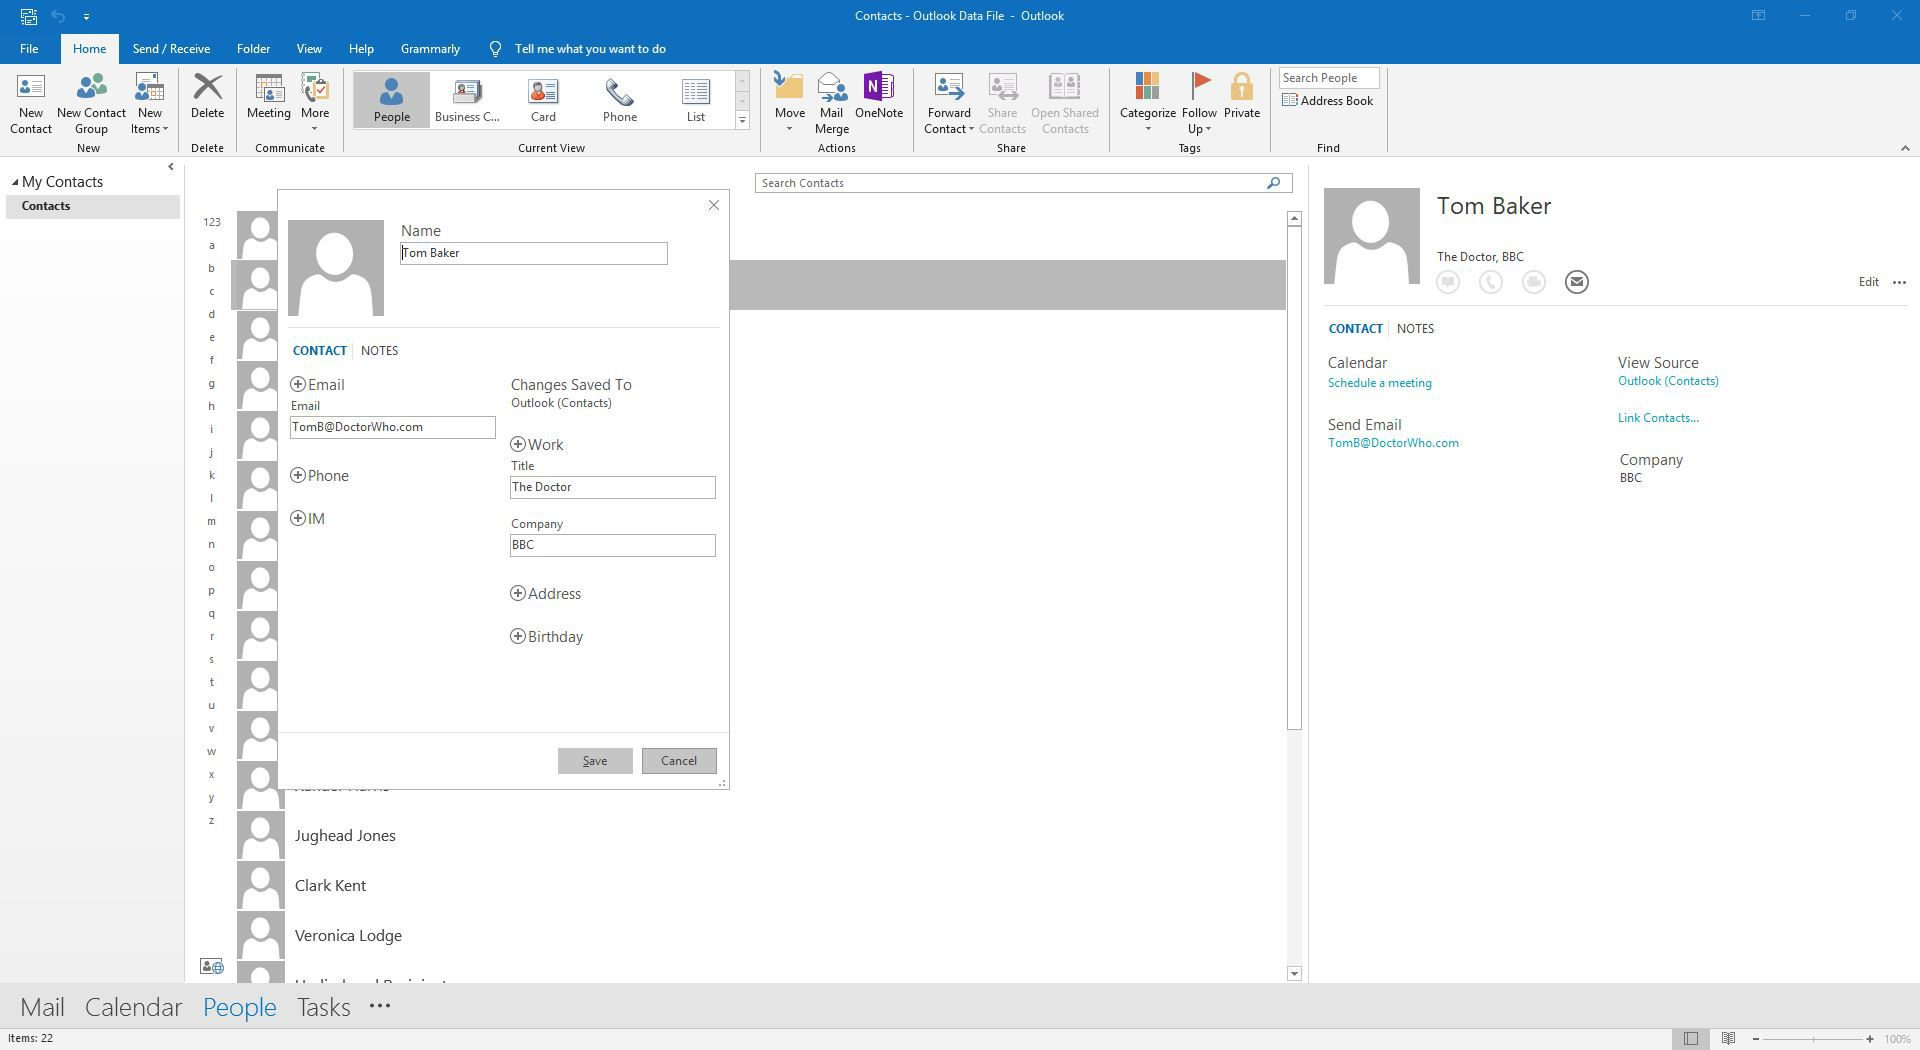 Viewing details of a contact in Outlook